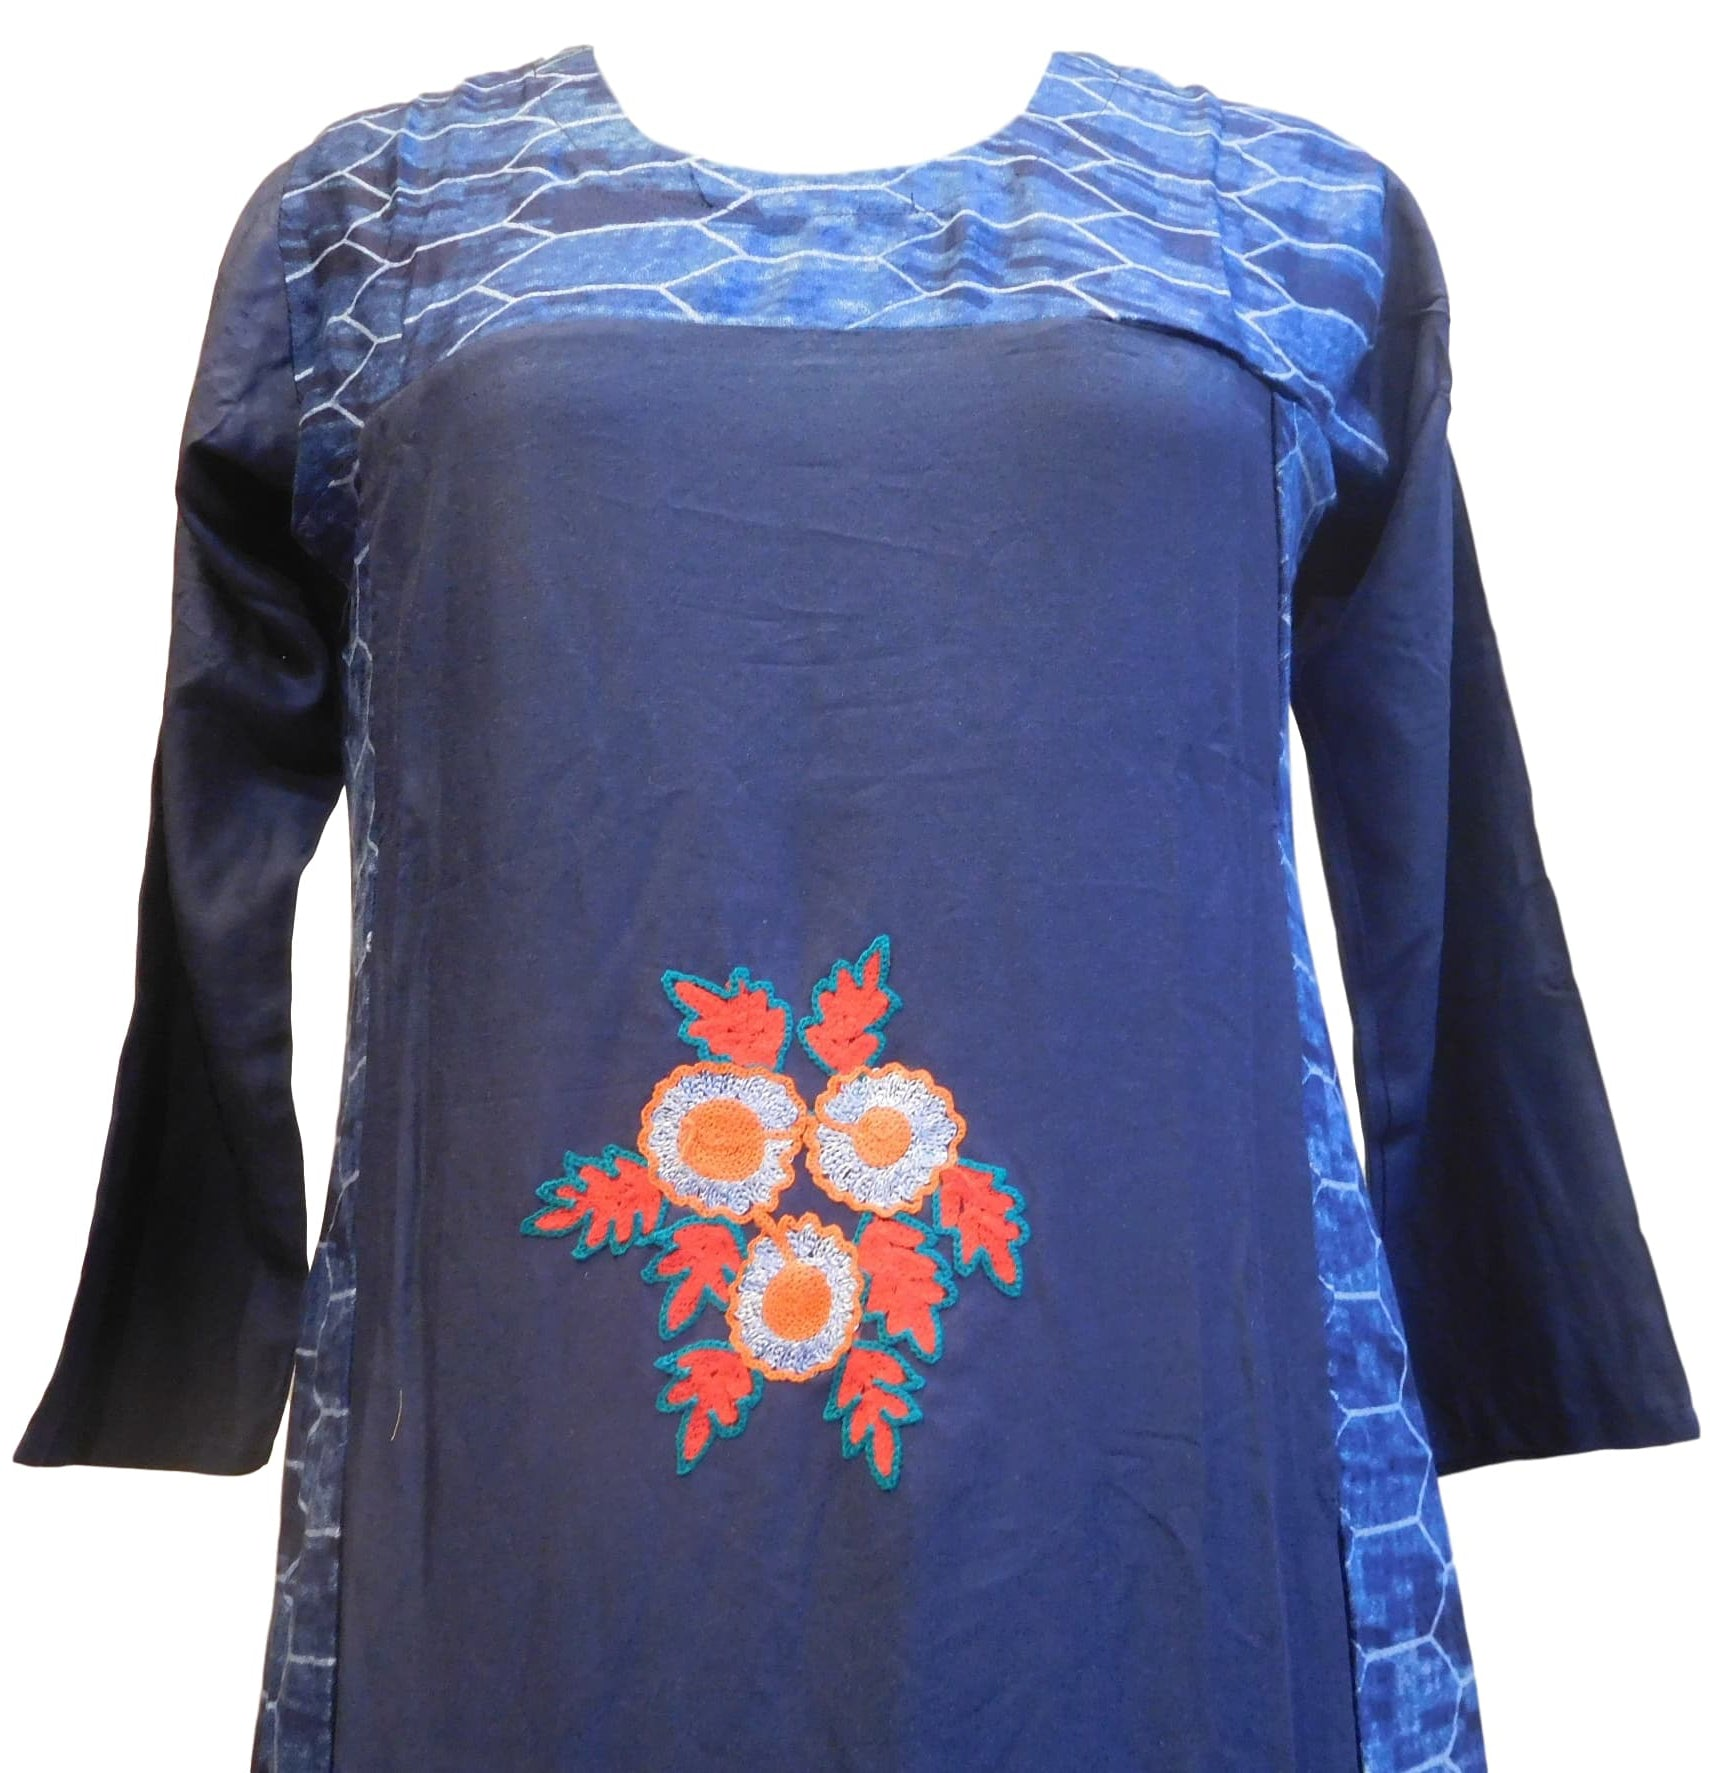 Blue Designer Cotton (Rayon) Printed Thread Work Kurti Kurta